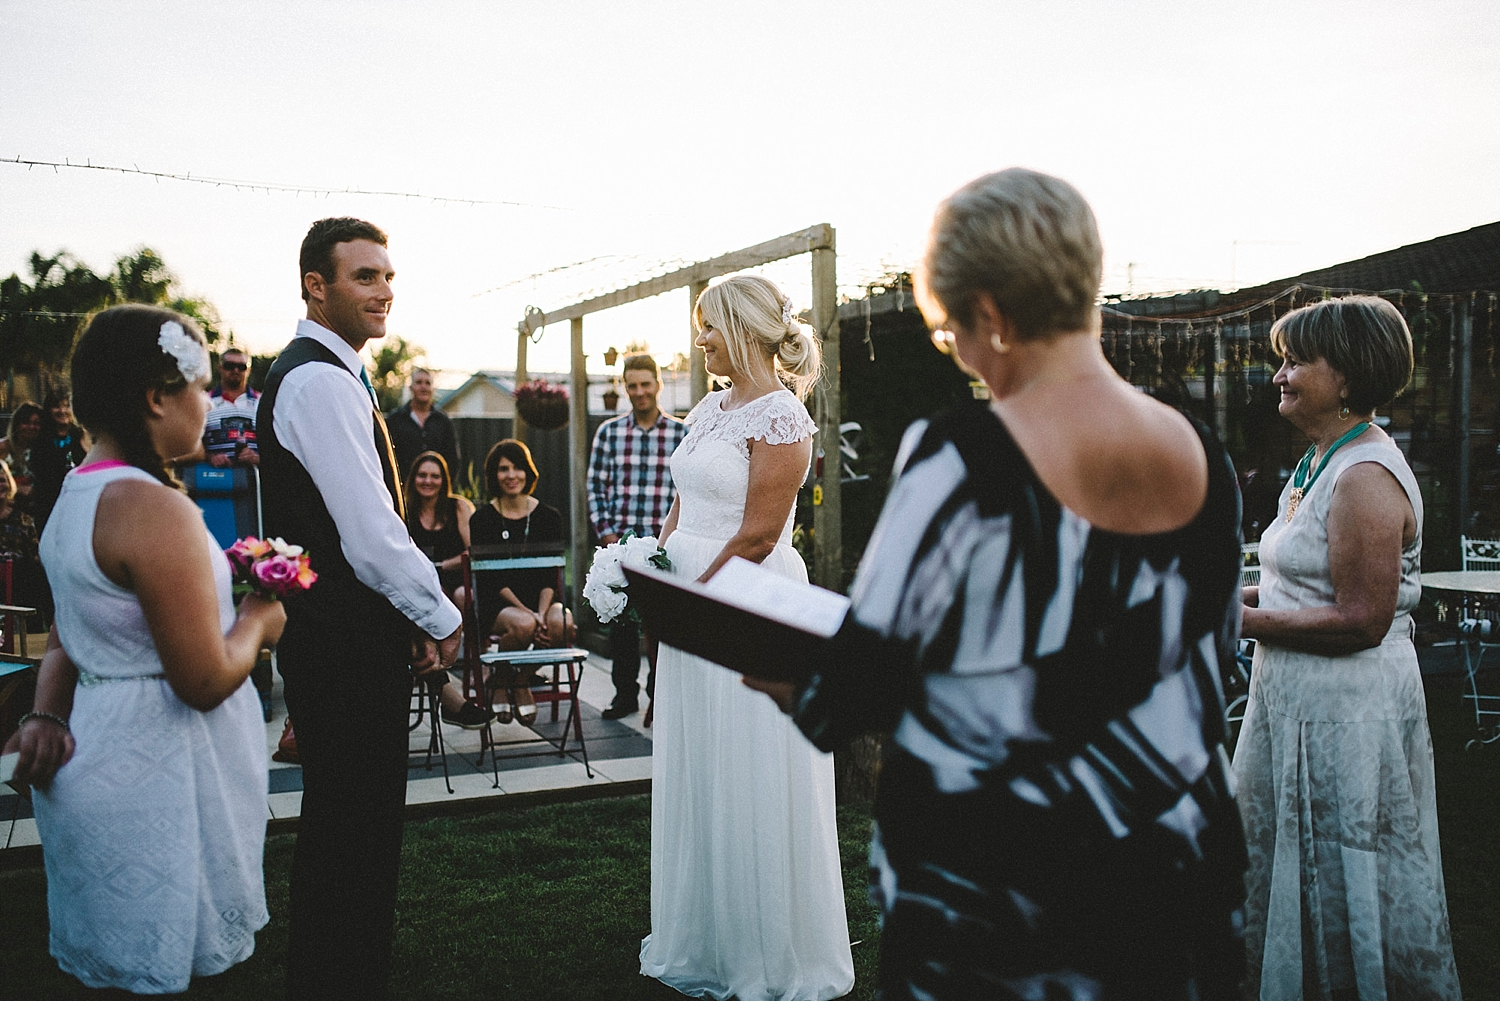 Holly_And_Josh_Morgan_Roberts_Photography 0031.JPG